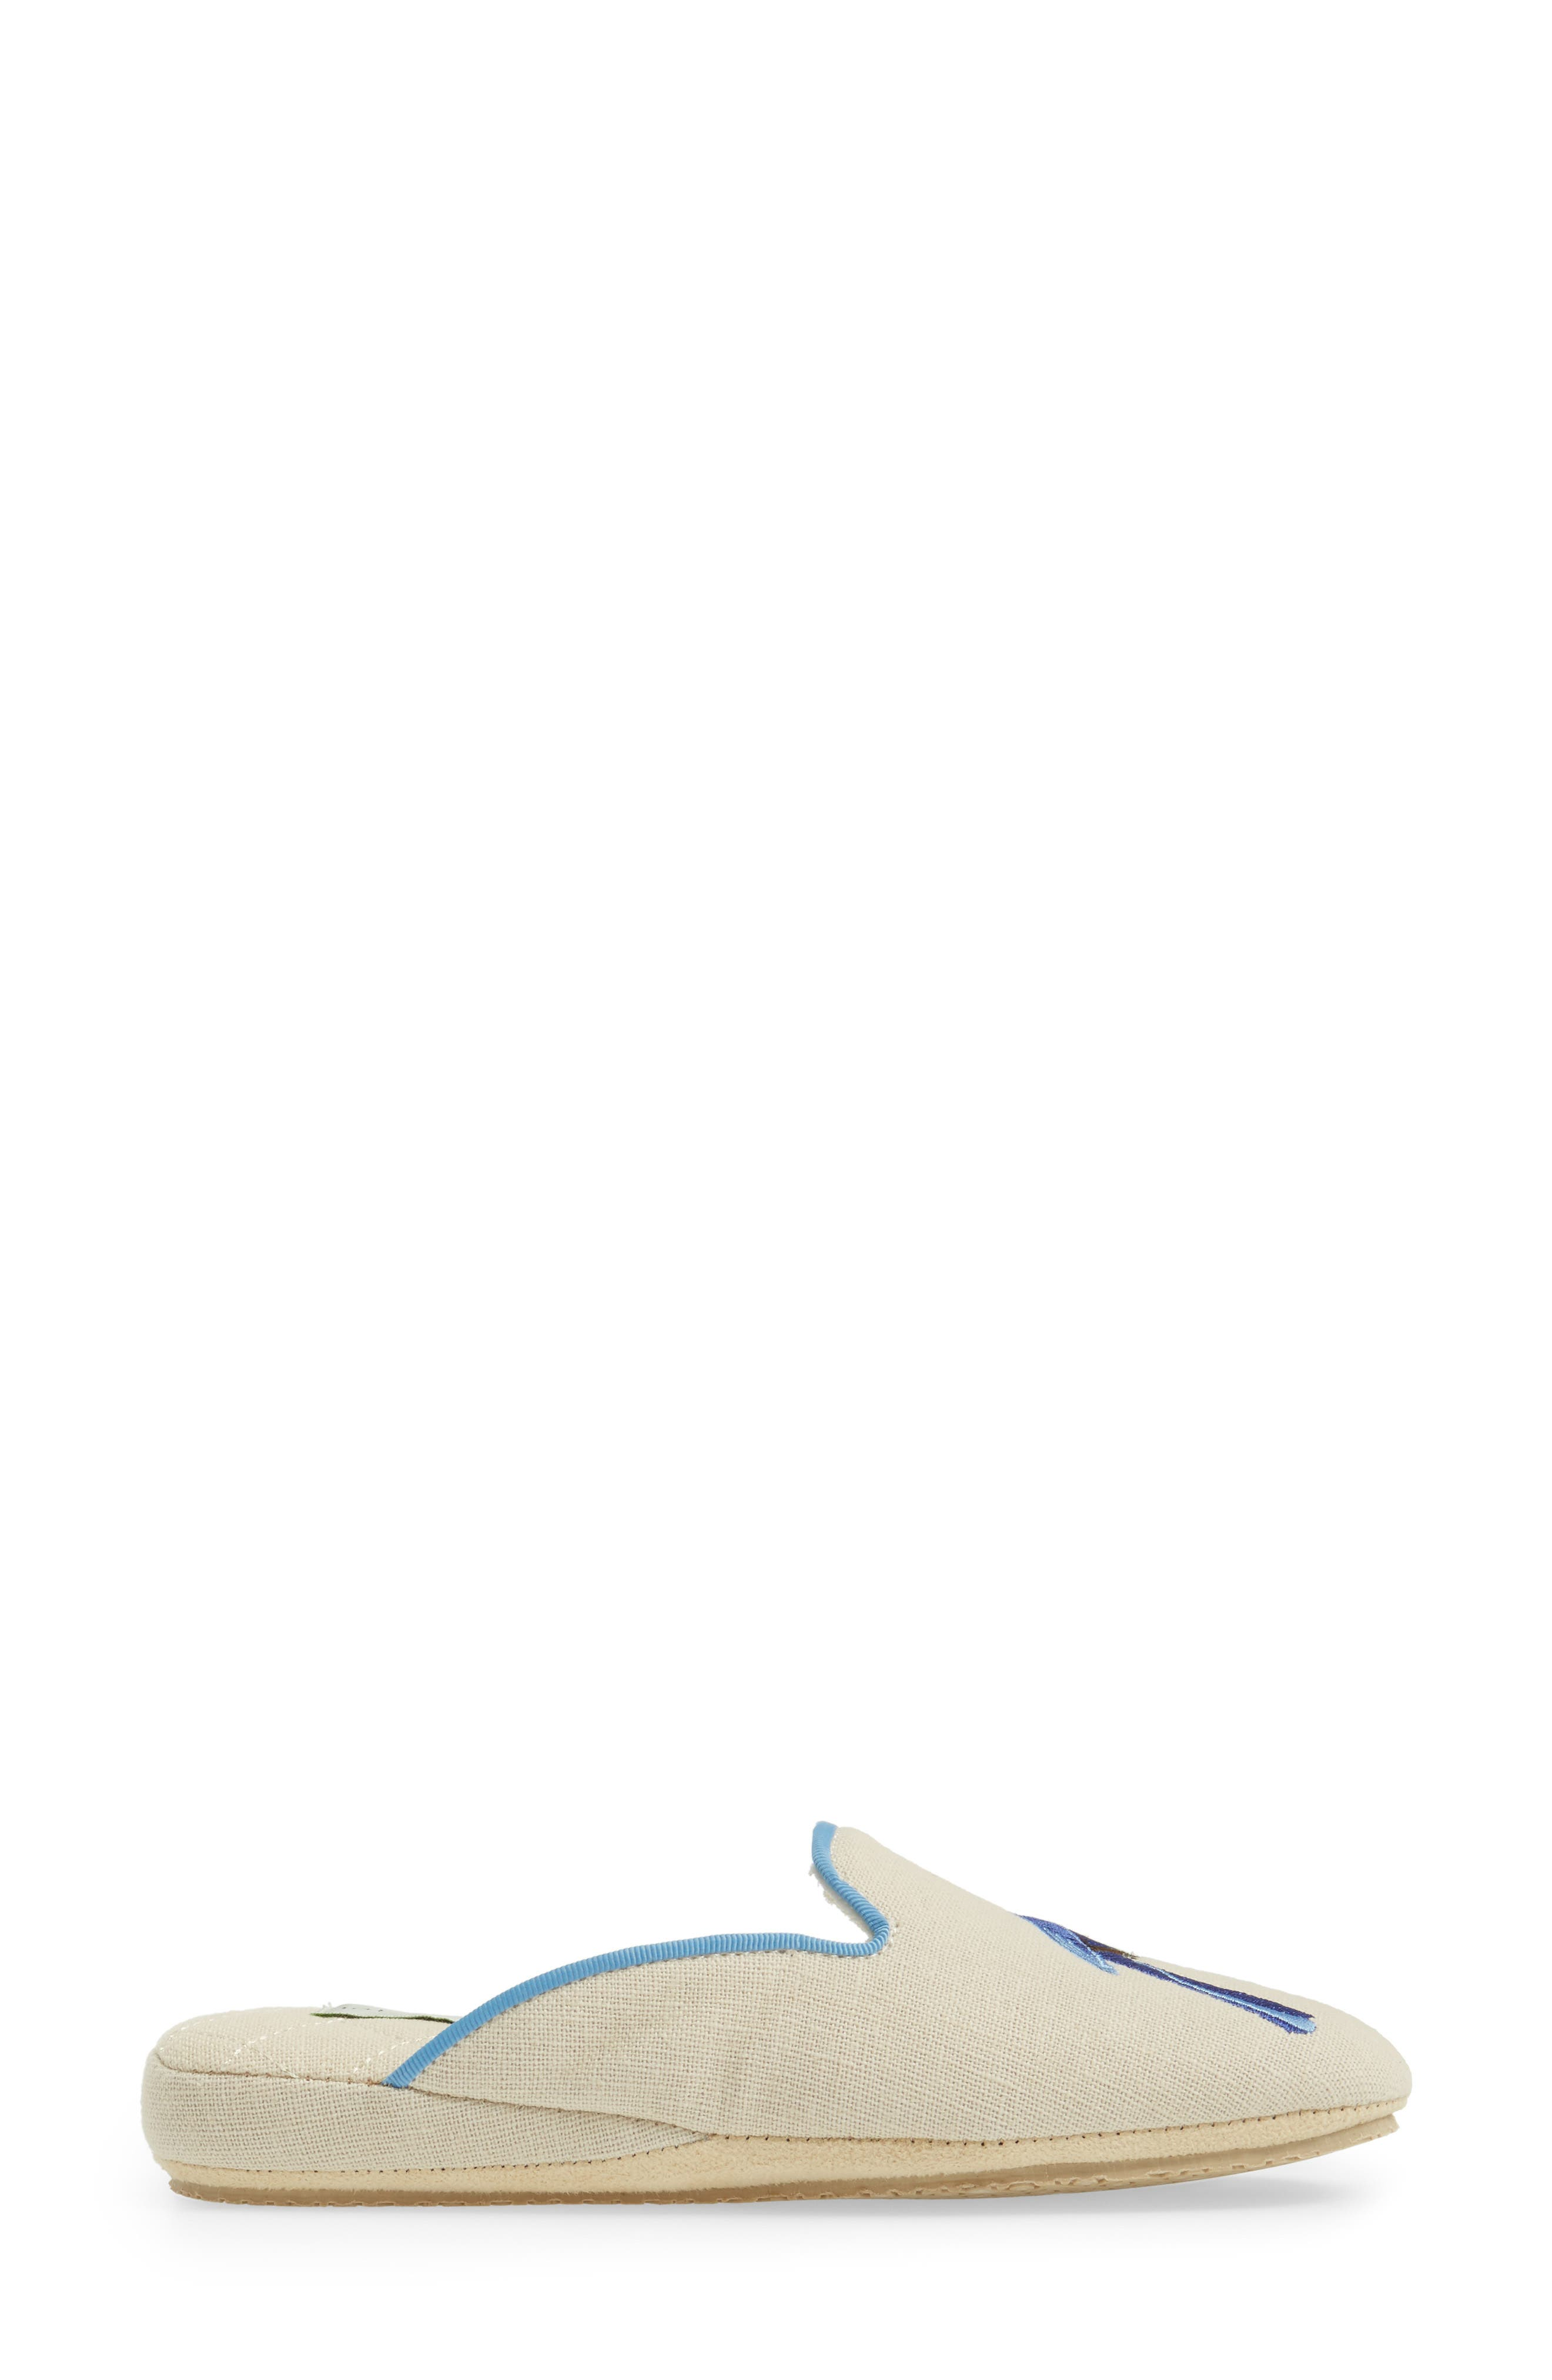 Bluebird Embroidered Slipper,                             Alternate thumbnail 3, color,                             255